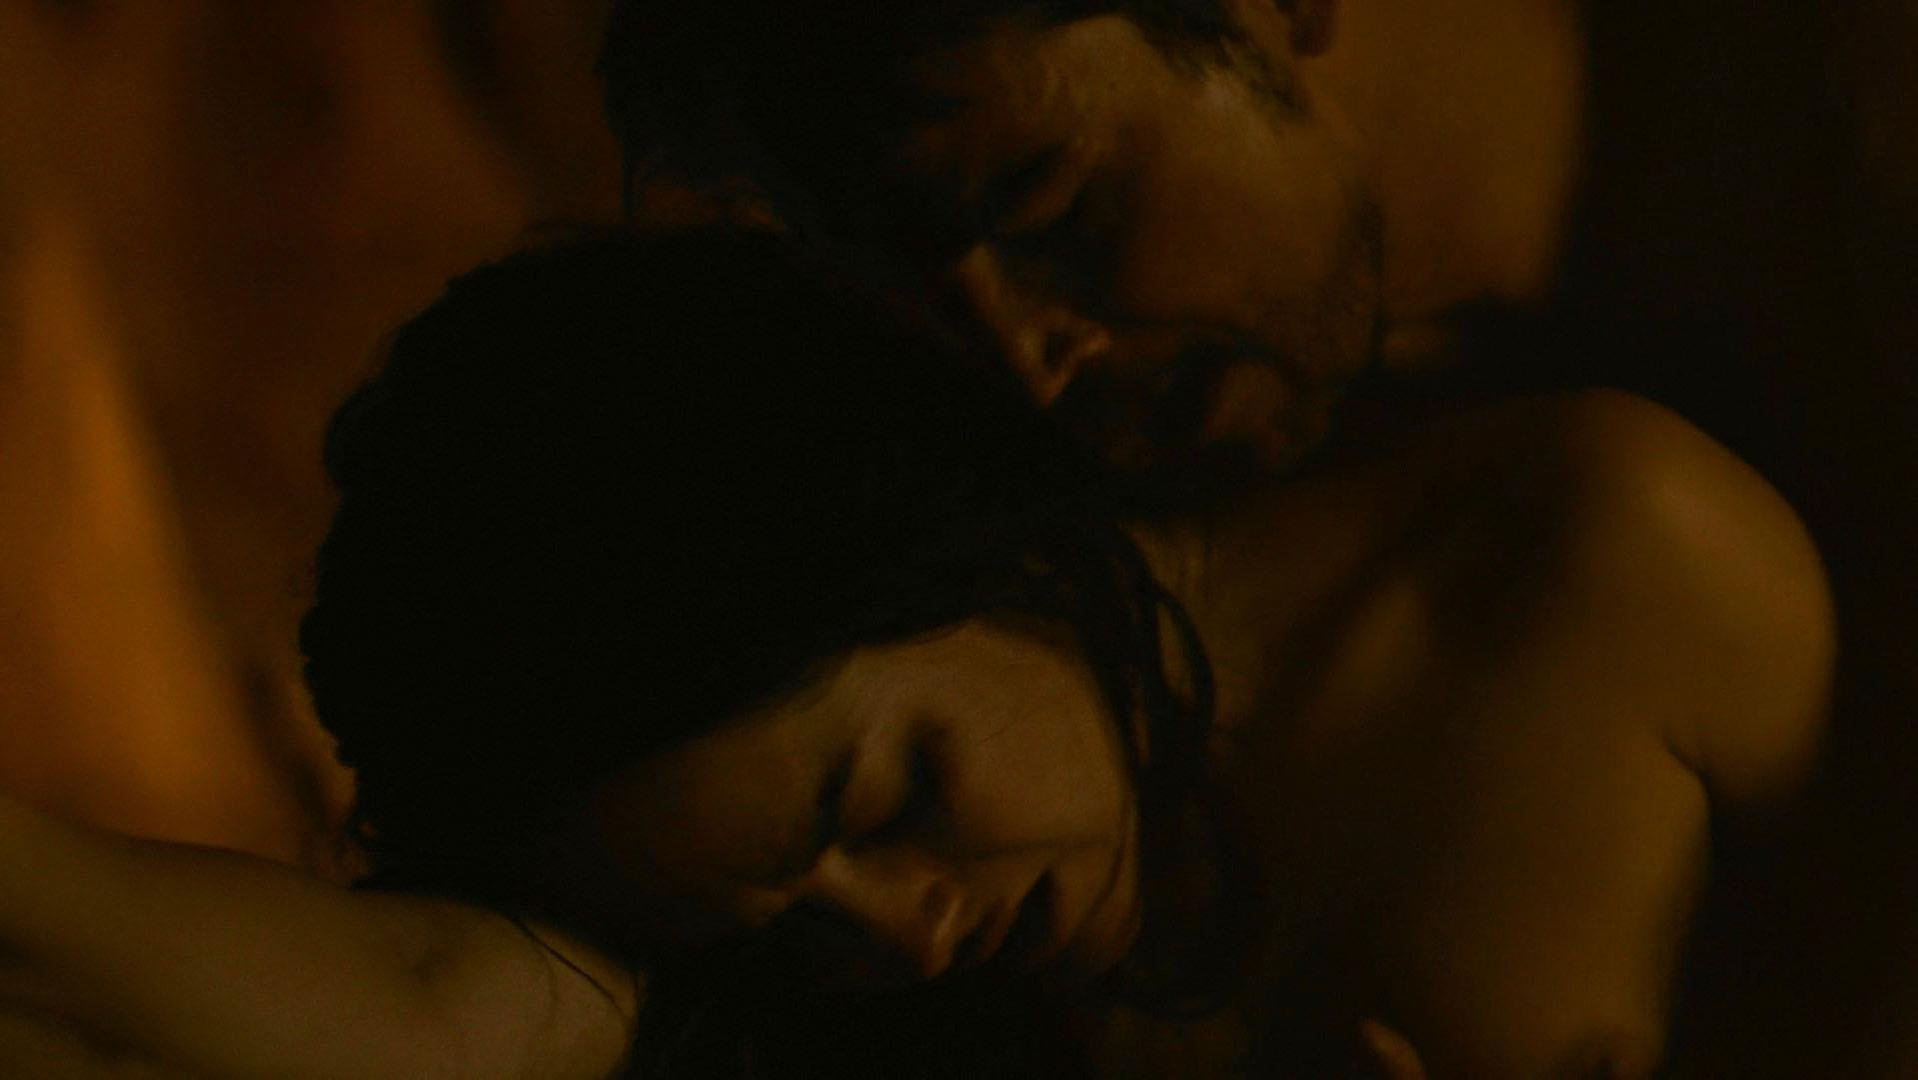 Sarah Greene nude - Penny Dreadful s03e05 (2016)